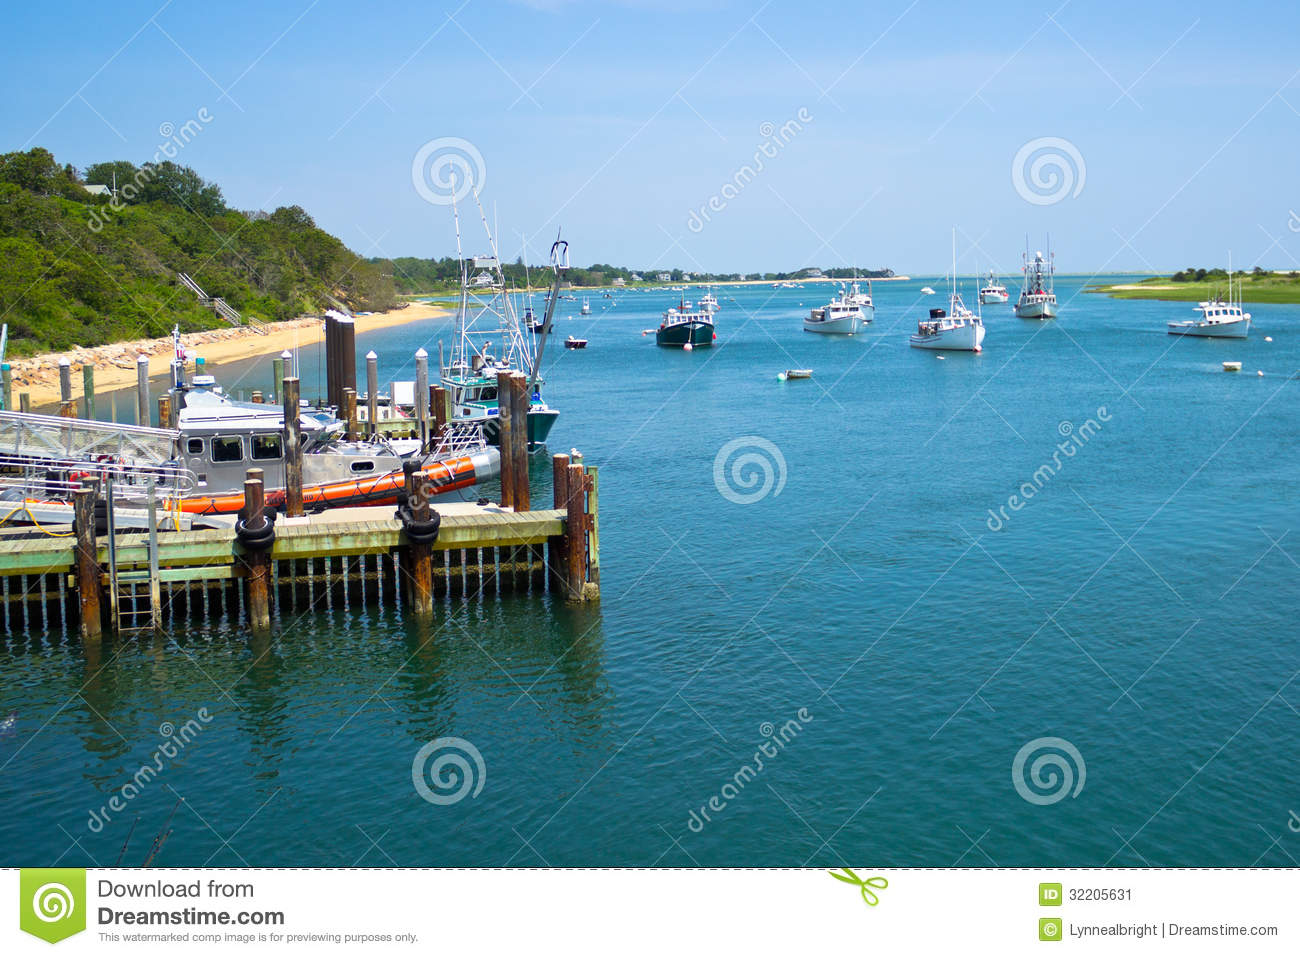 Boats near chatham fish pier stock image image 32205631 for Fishing piers near me